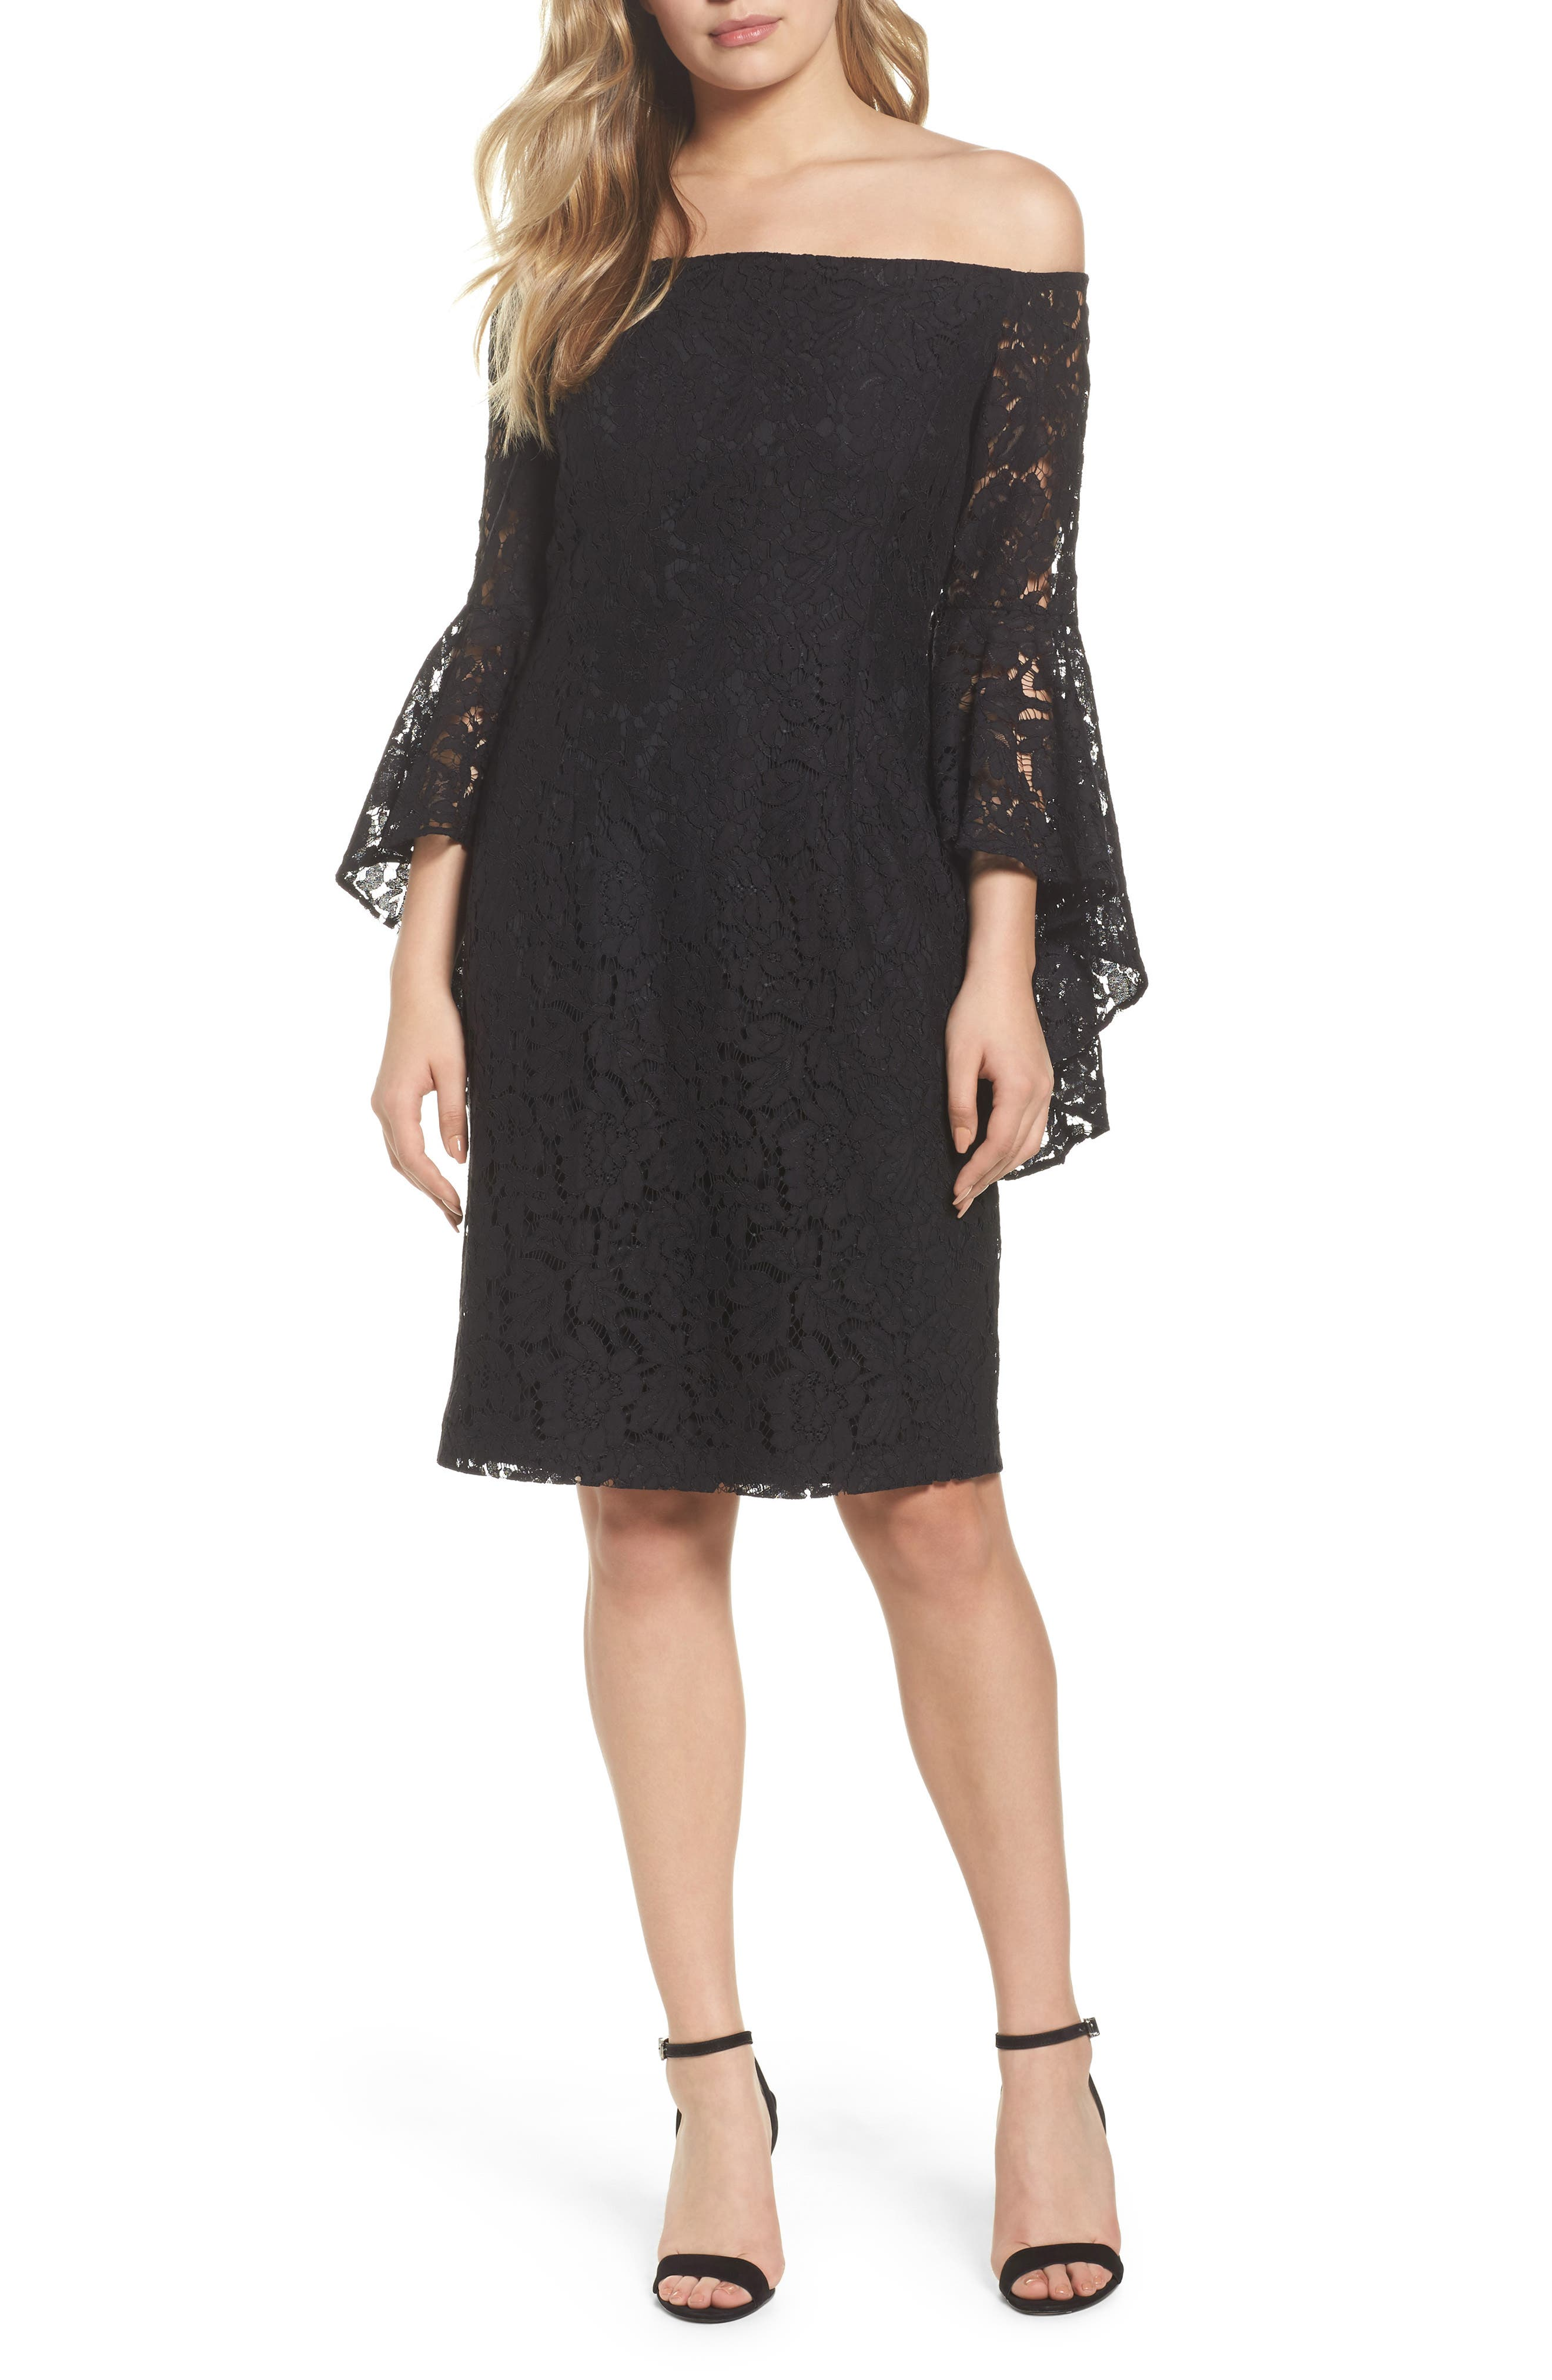 Alternate Image 1 Selected - Chelsea28 Off the Shoulder Lace Dress